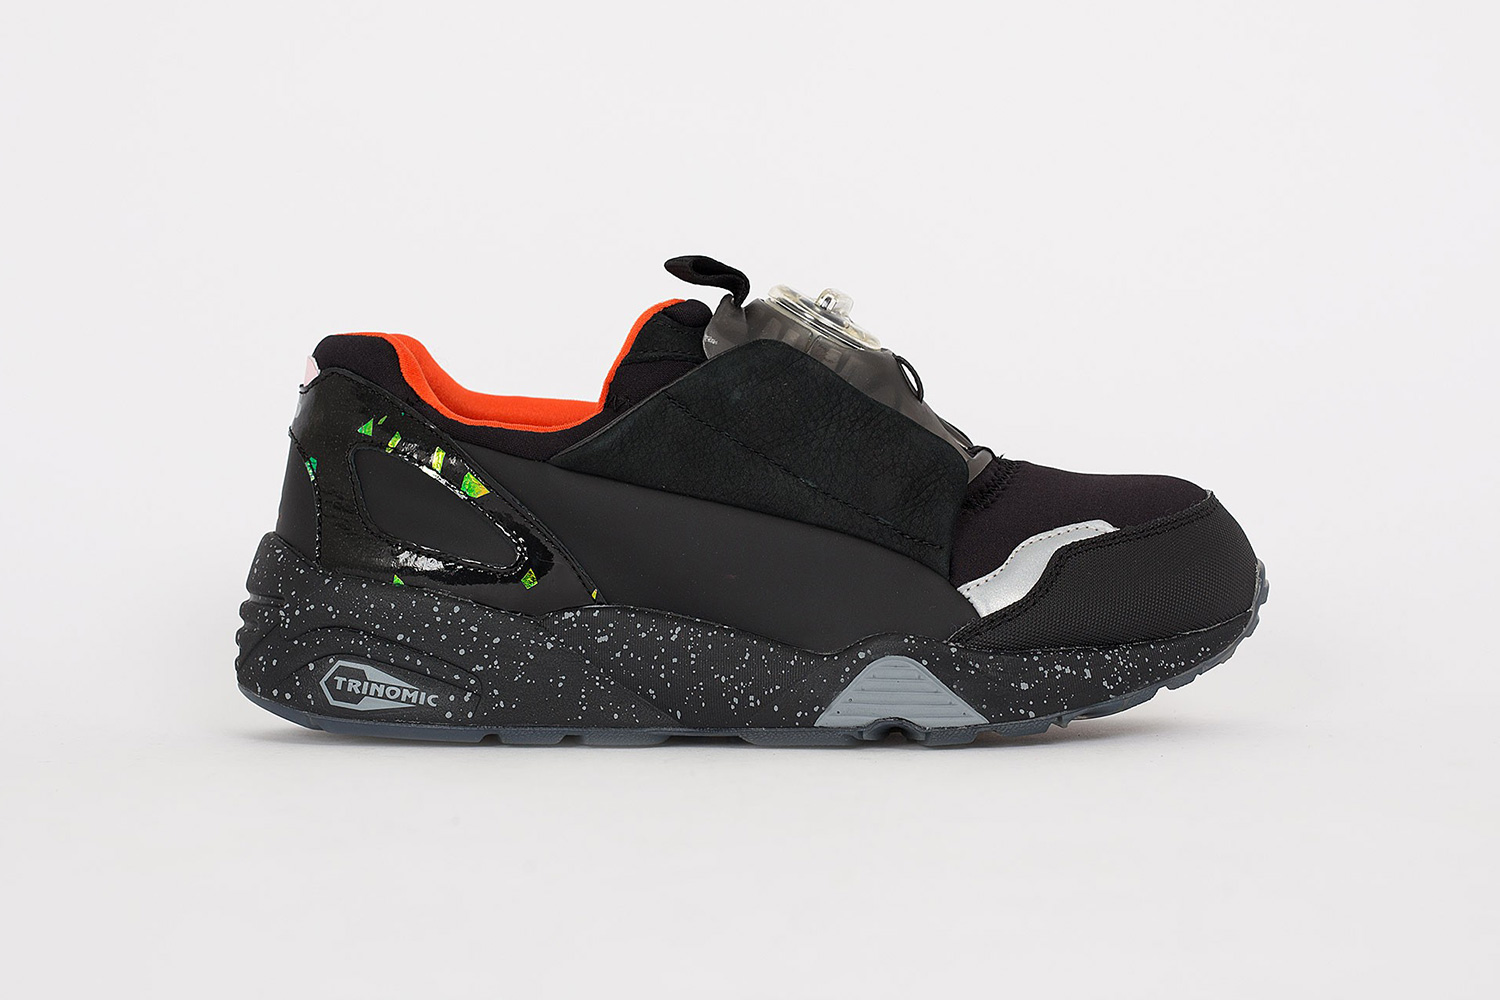 mcq alexander mcqueen puma disc blaze hypebeast. Black Bedroom Furniture Sets. Home Design Ideas